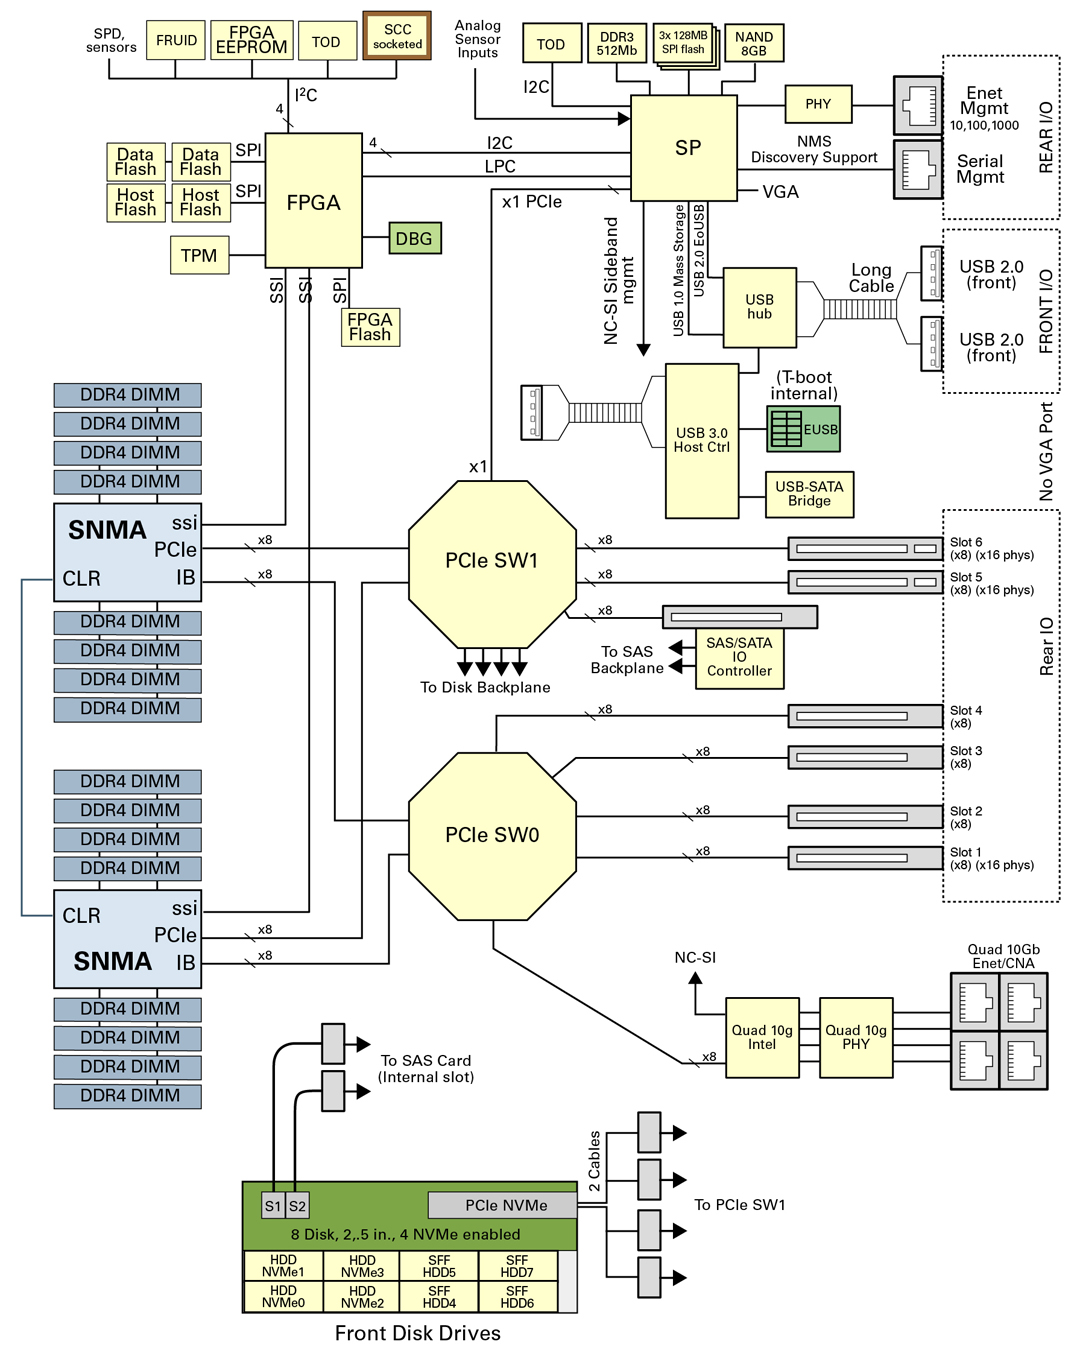 image:Figure showing block diagram of server components.